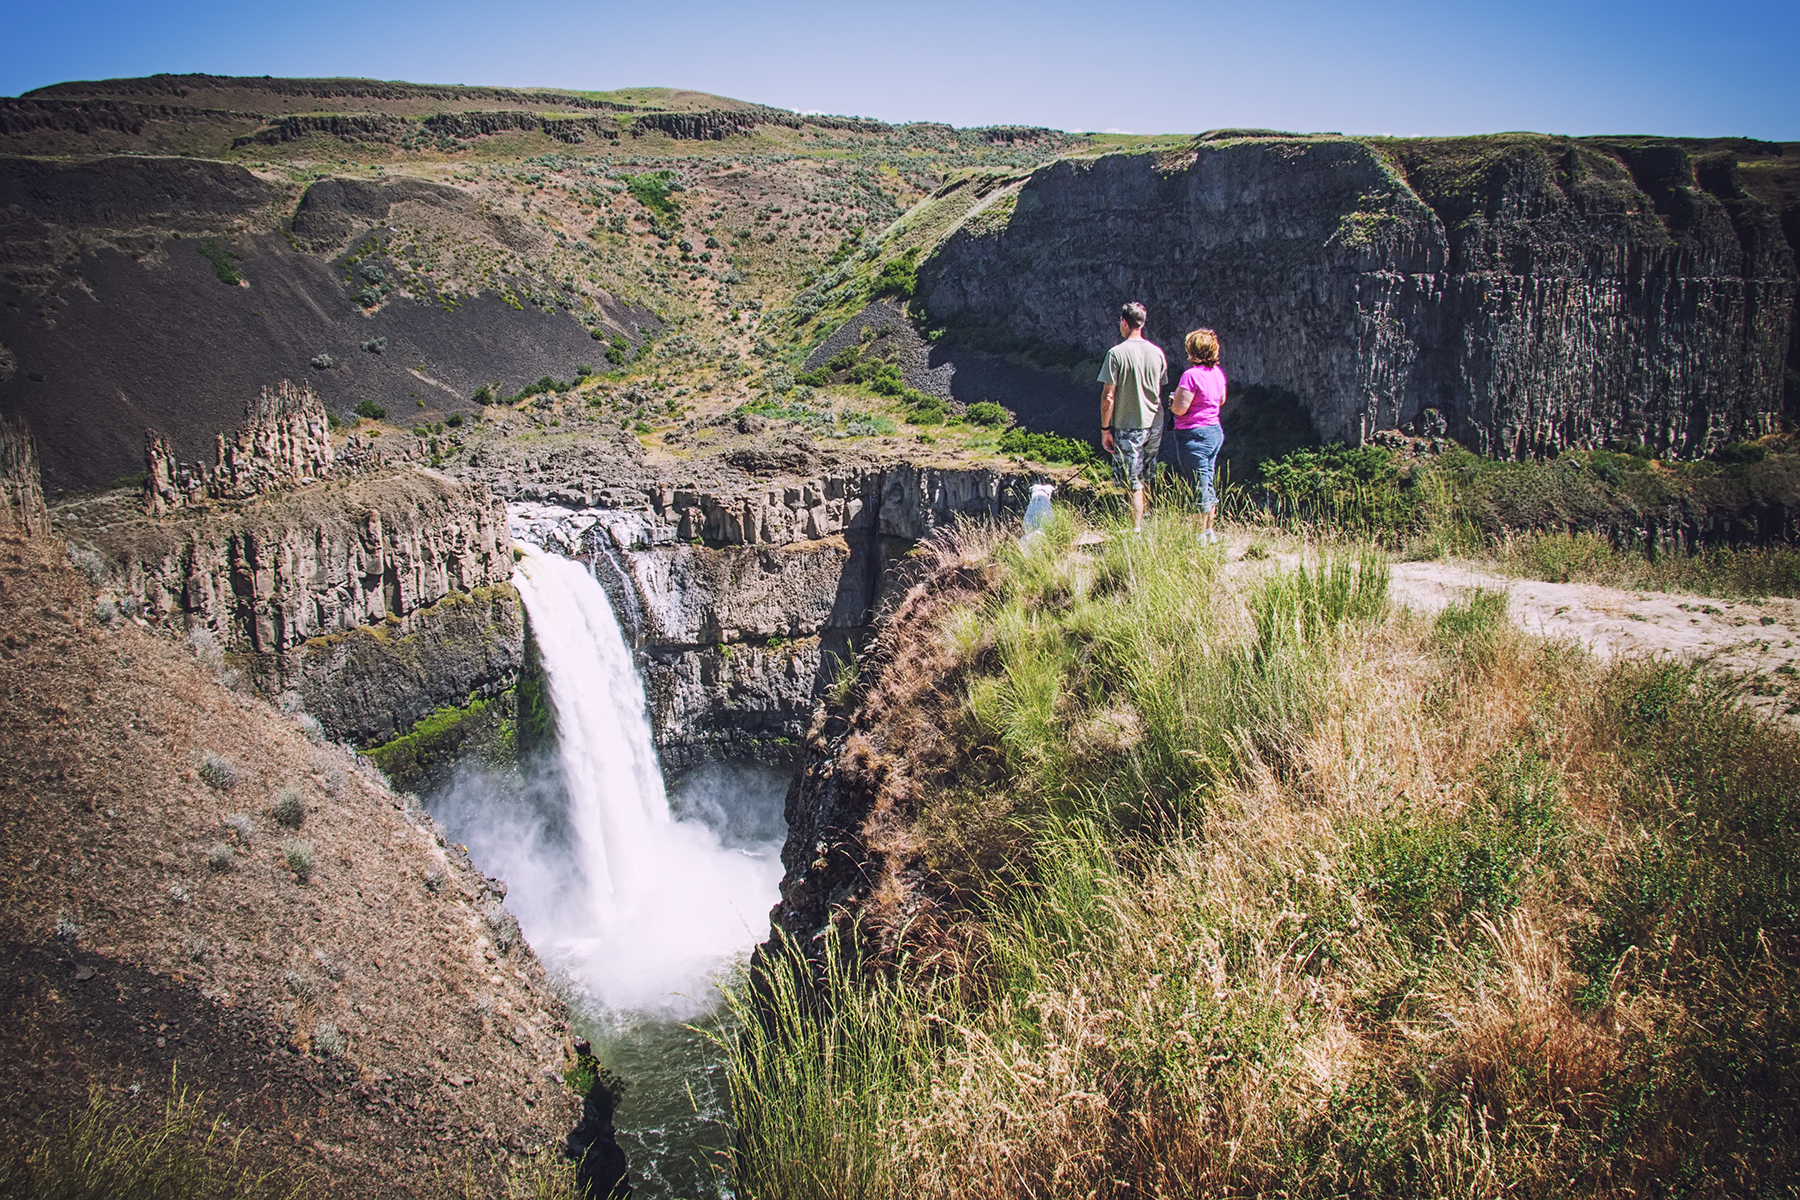 The second overlook just up the trail from the parking lot offers another stunning view of the falls. Photo Courtesy  © Steven Pavlov  /  http://commons.wikimedia.org/wiki/User:Senapa  /  CC BY-SA 4.0